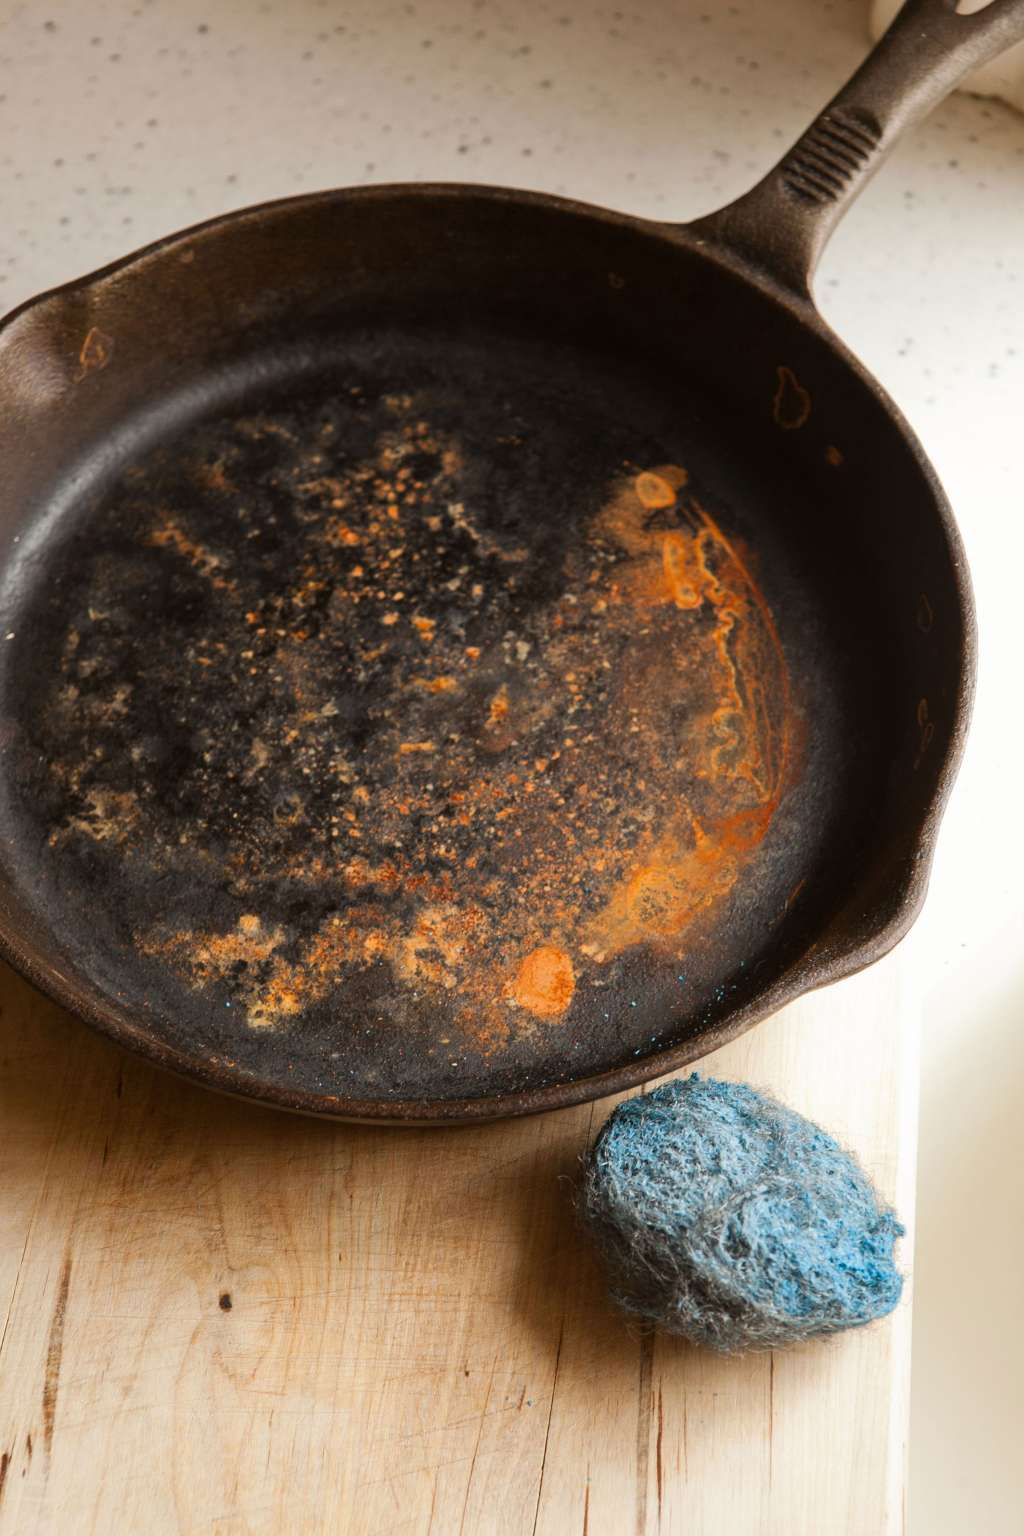 How To Restore a Rusty Cast Iron Skillet